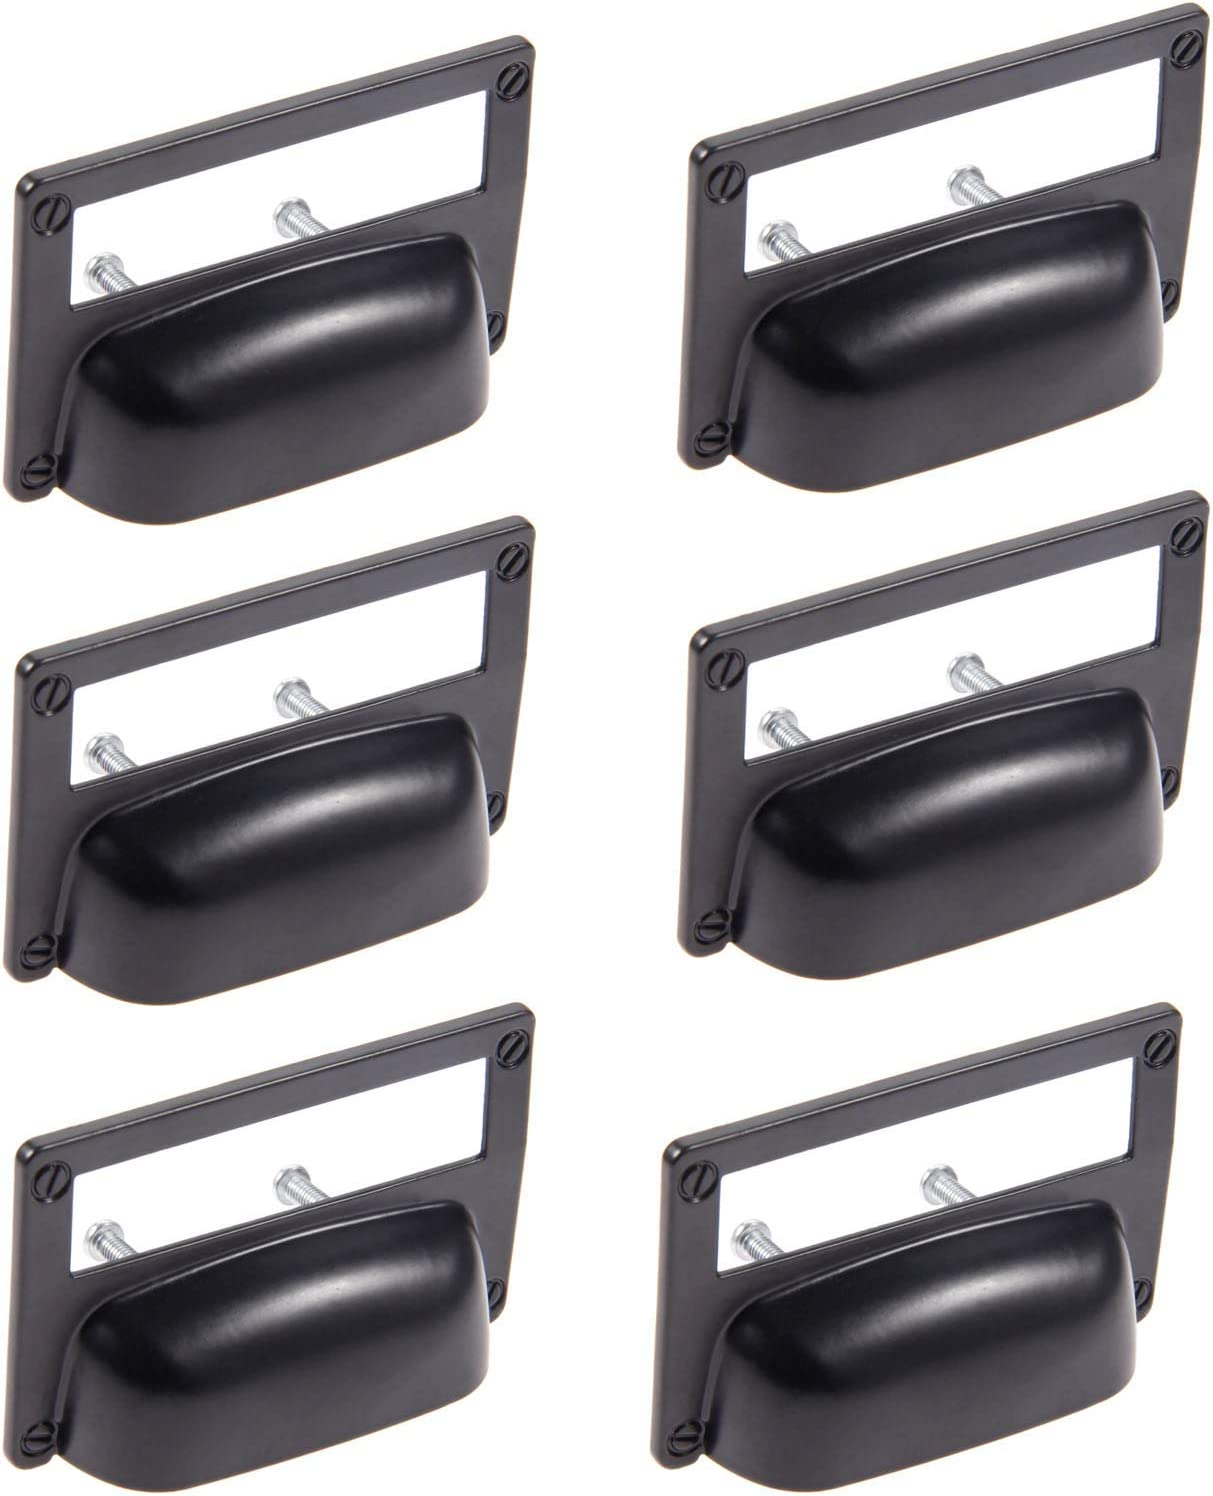 3.19x2.05 L x H Oil Rubbed Black Dophee 6Pcs Hole Space 1.38 Farmhouse Style Label Tag Frame Handle Knob for Cabinet Drawer Door